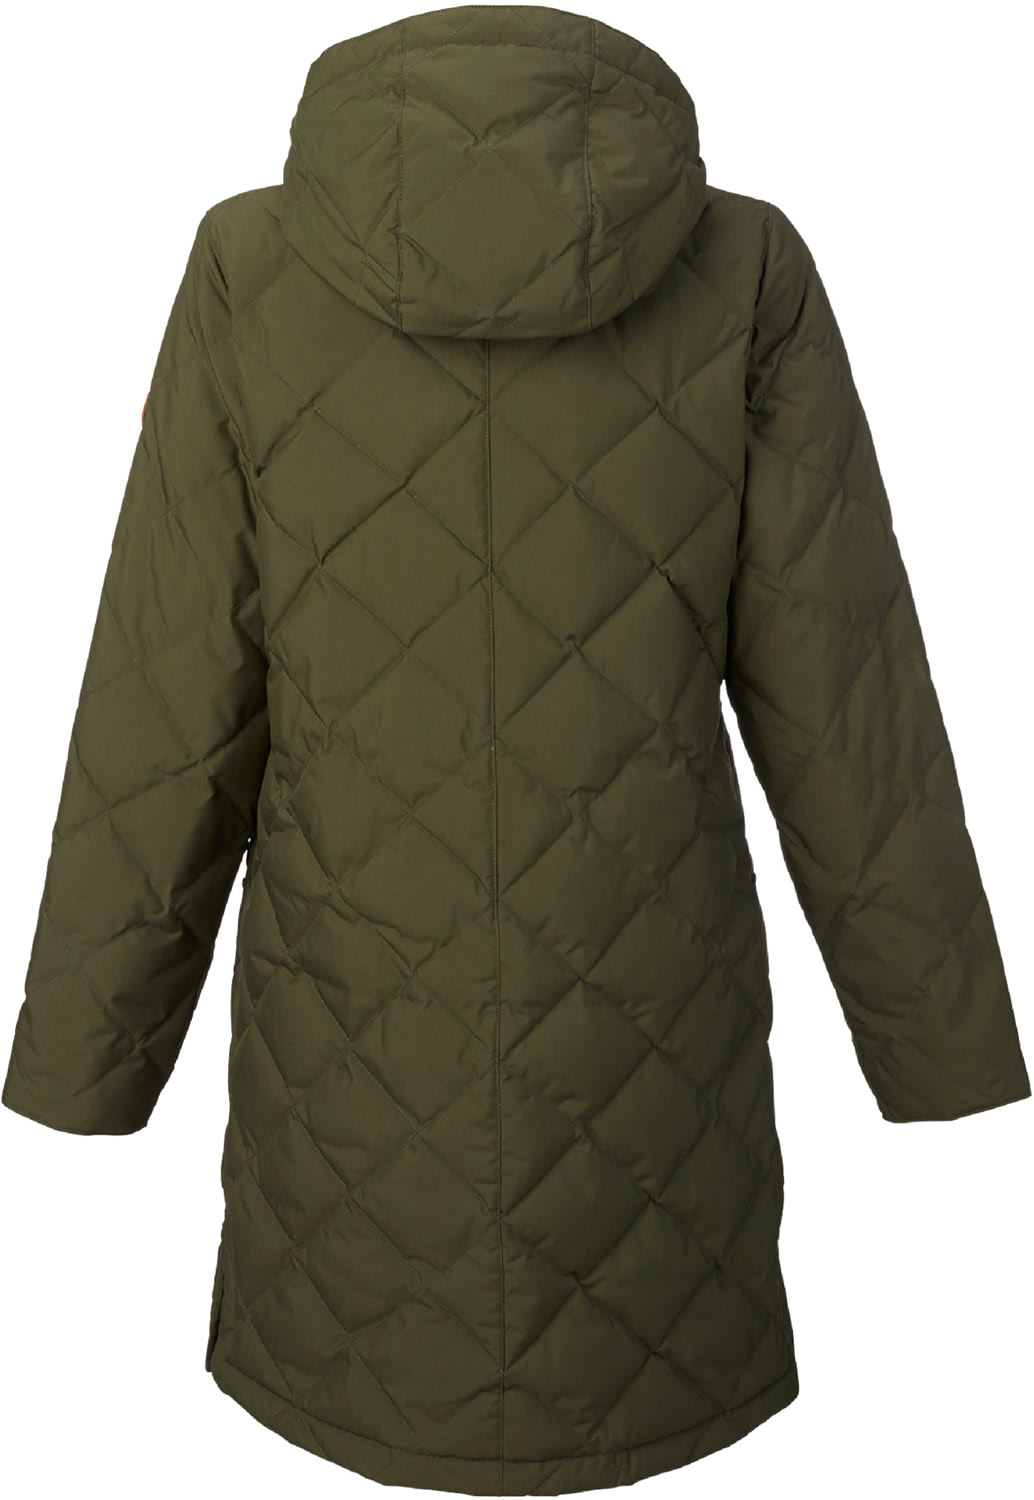 Down jackets for women on sale